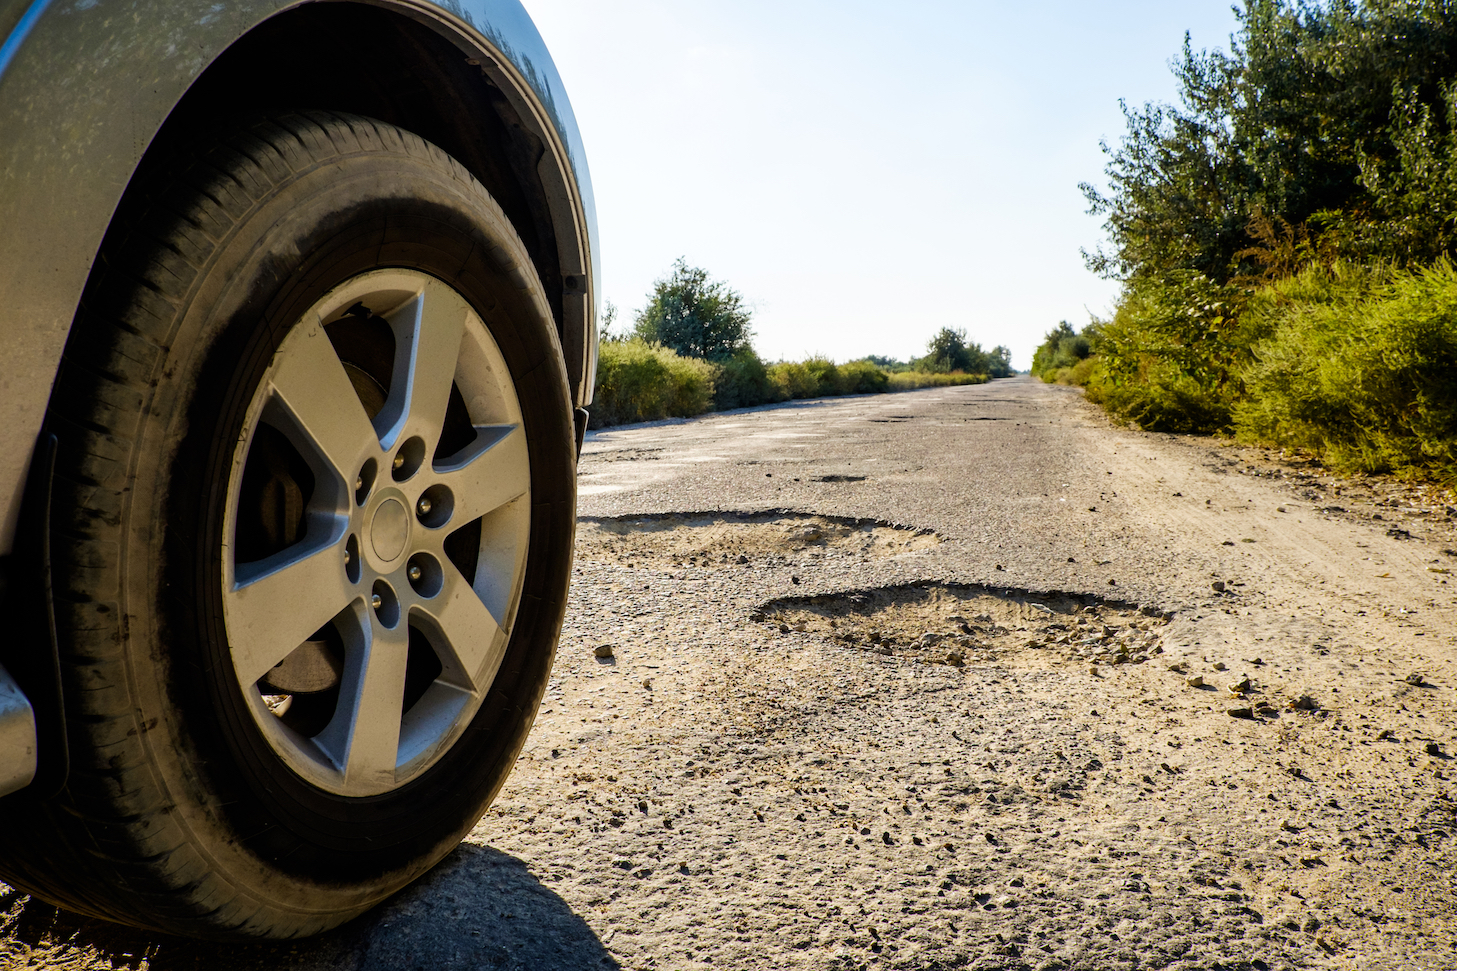 Scientists are working on the ultimate fix for potholes: a self-healing asphalt that uses a special bacteria to fill cracks